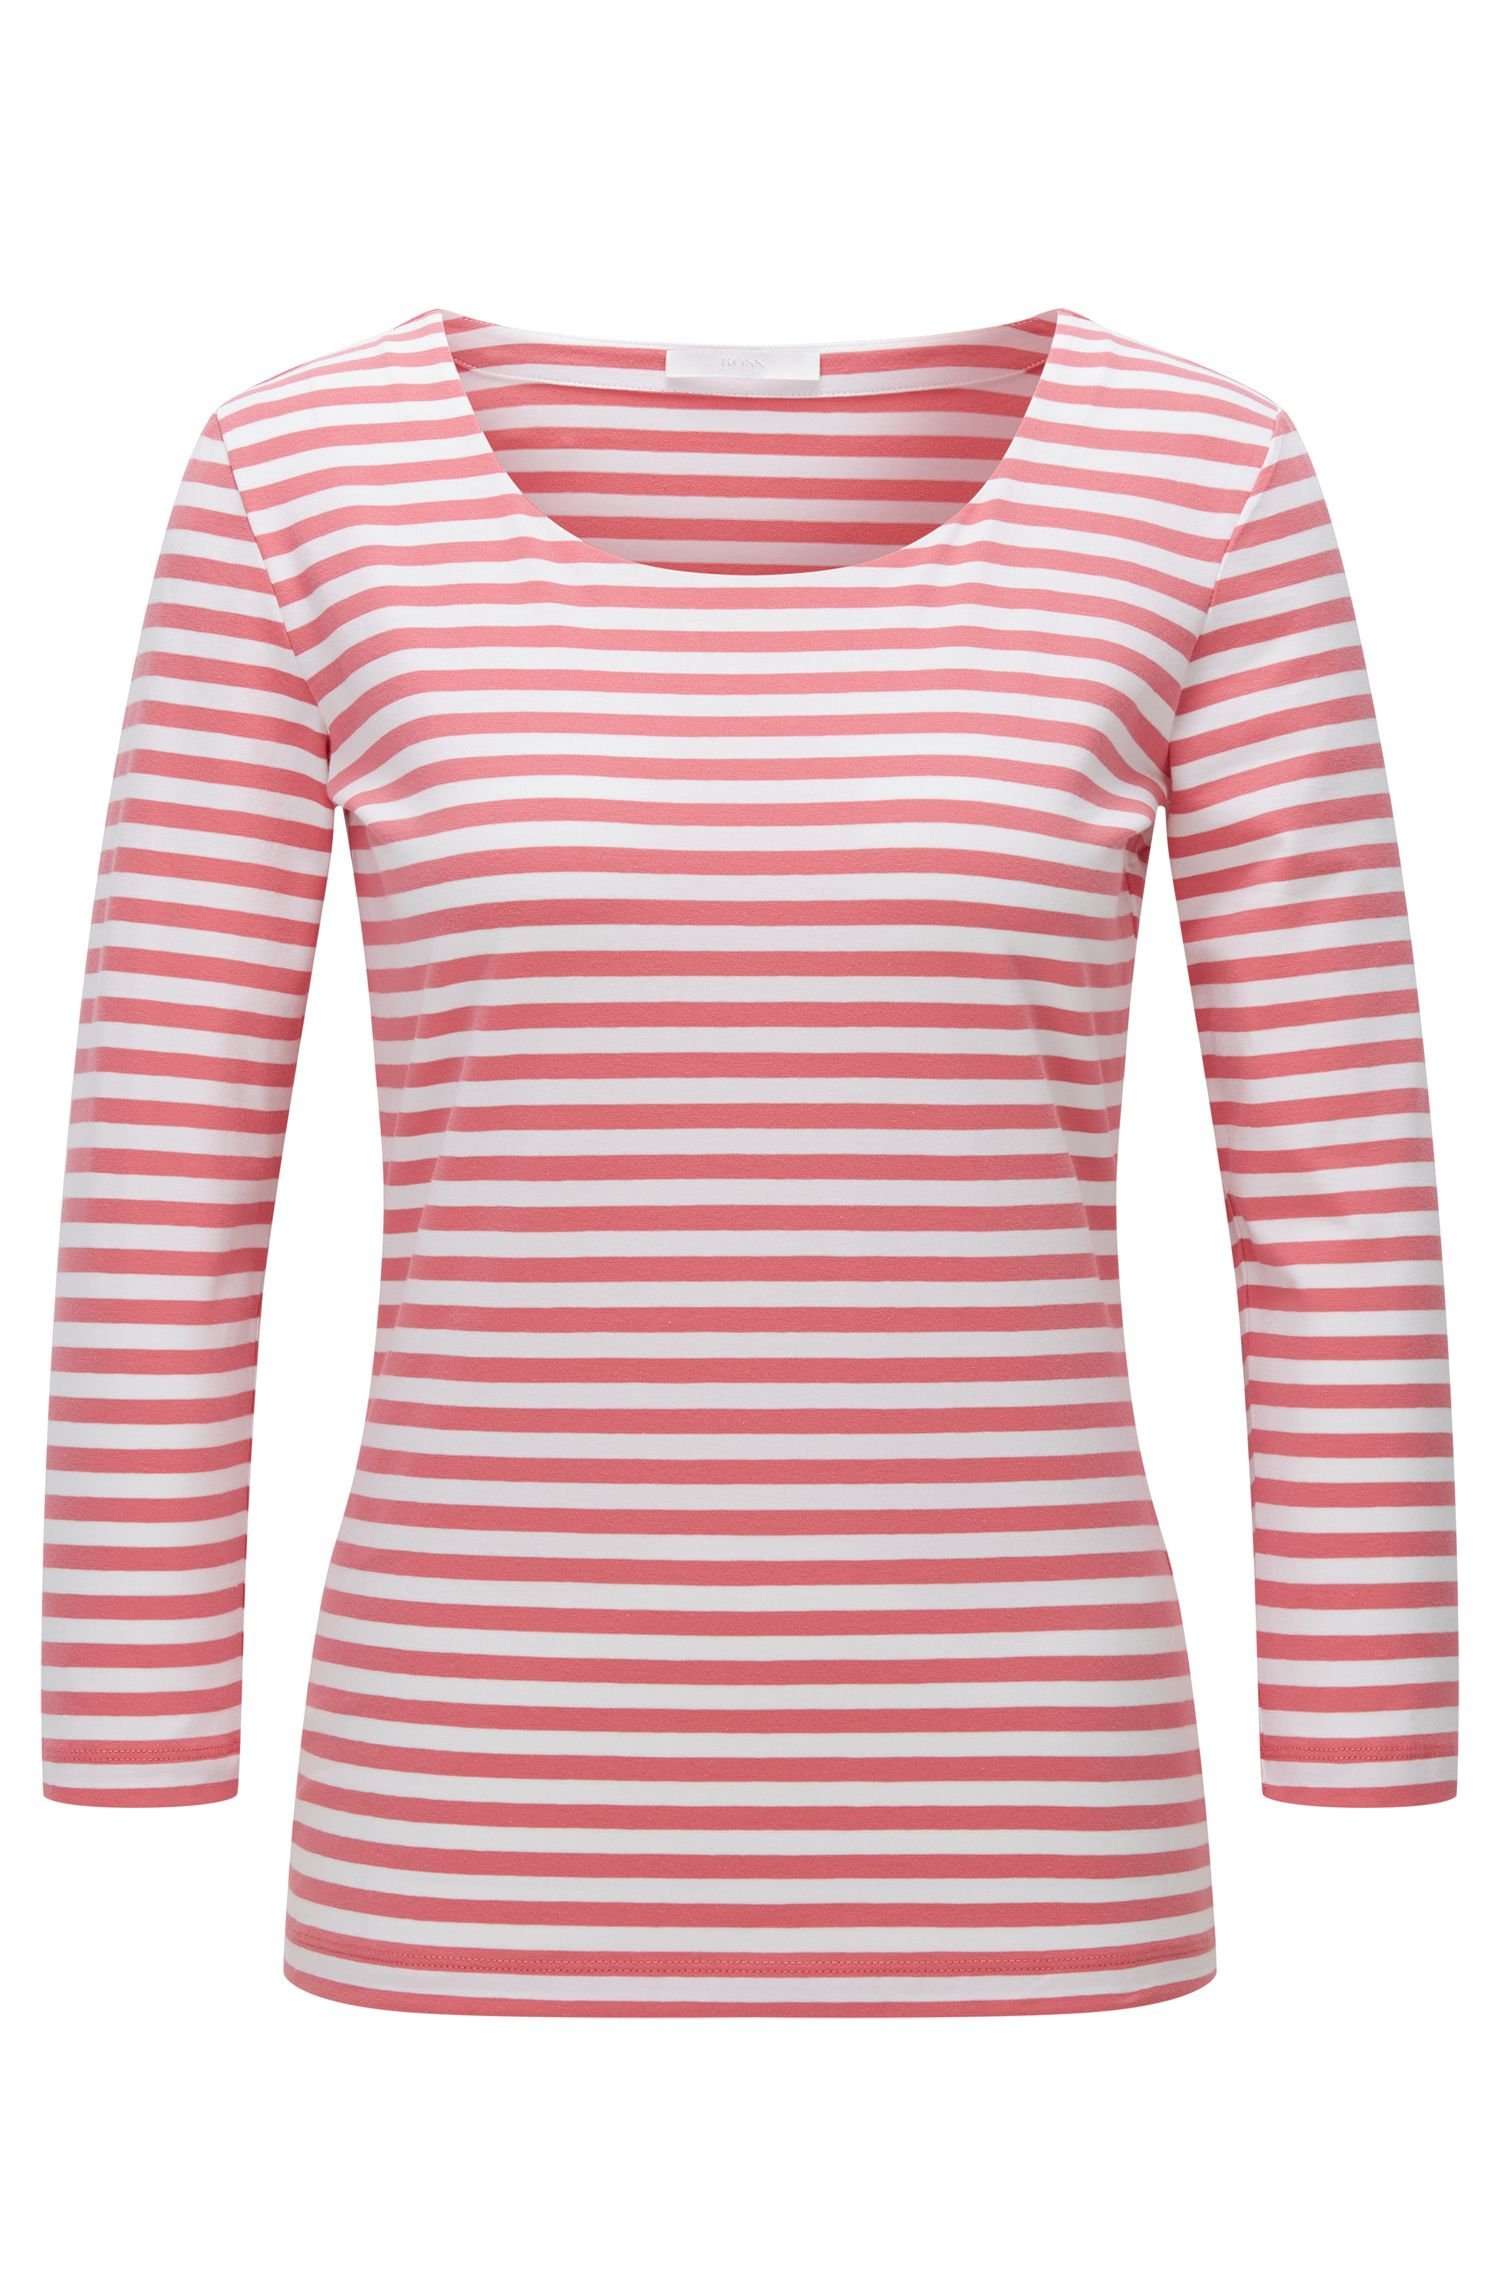 T-shirt regular fit in jersey singolo di cotone elasticizzato